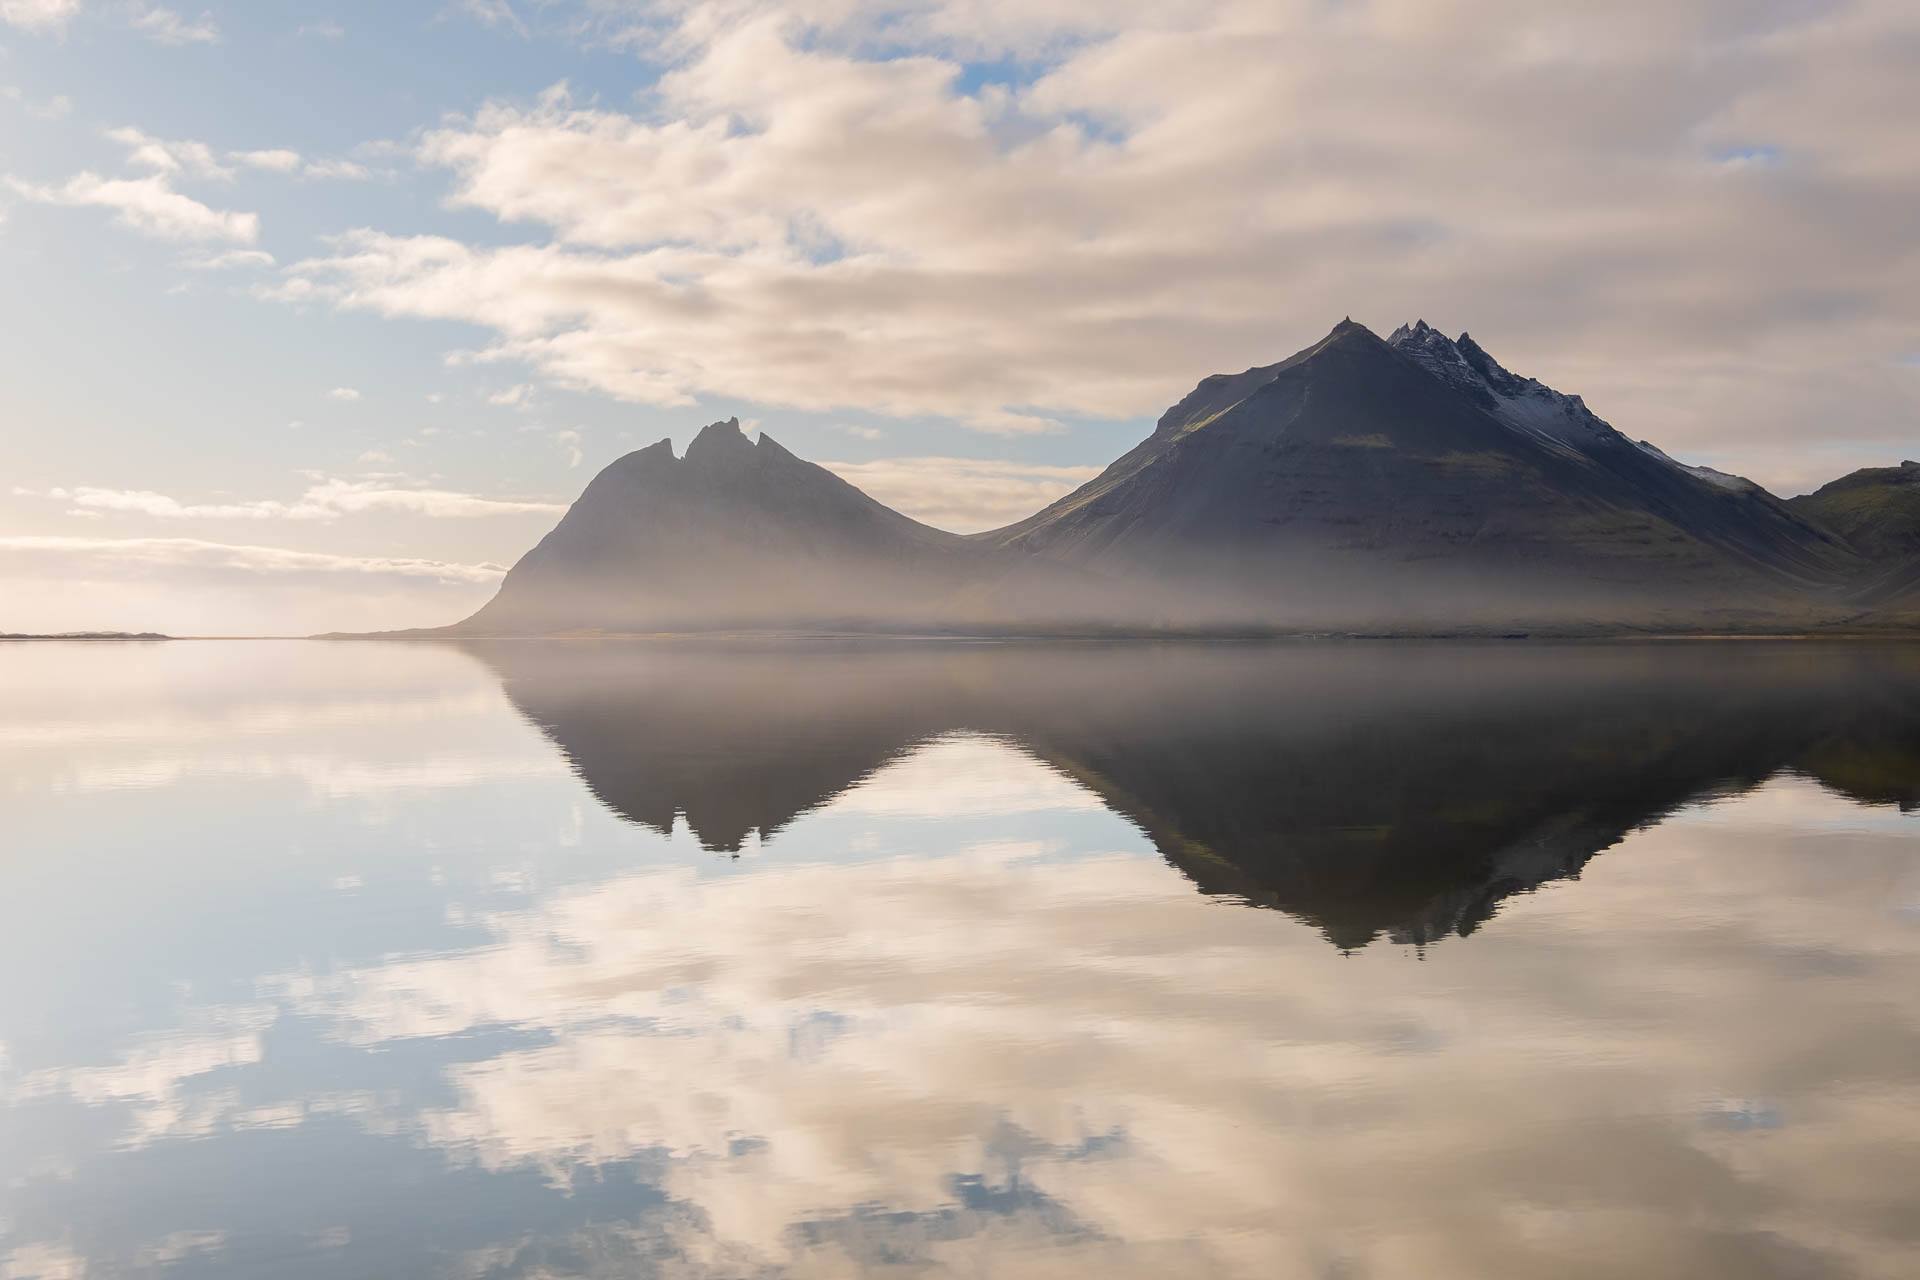 Brunnhotn mountain reflection in Iceland